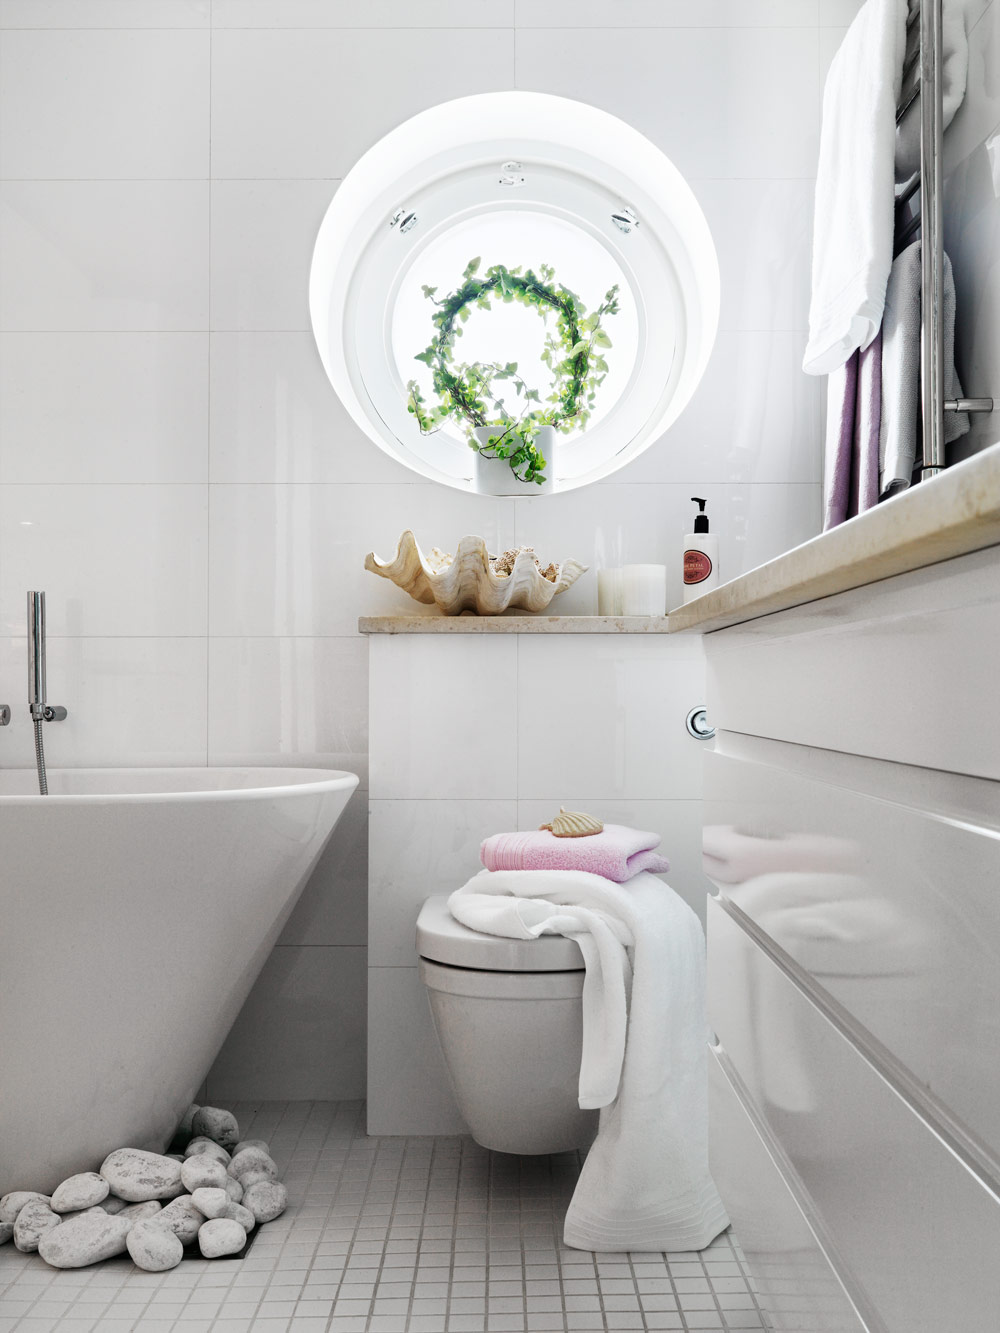 Stylish small bathroom with an unusual decor digsdigs for Mini bathroom